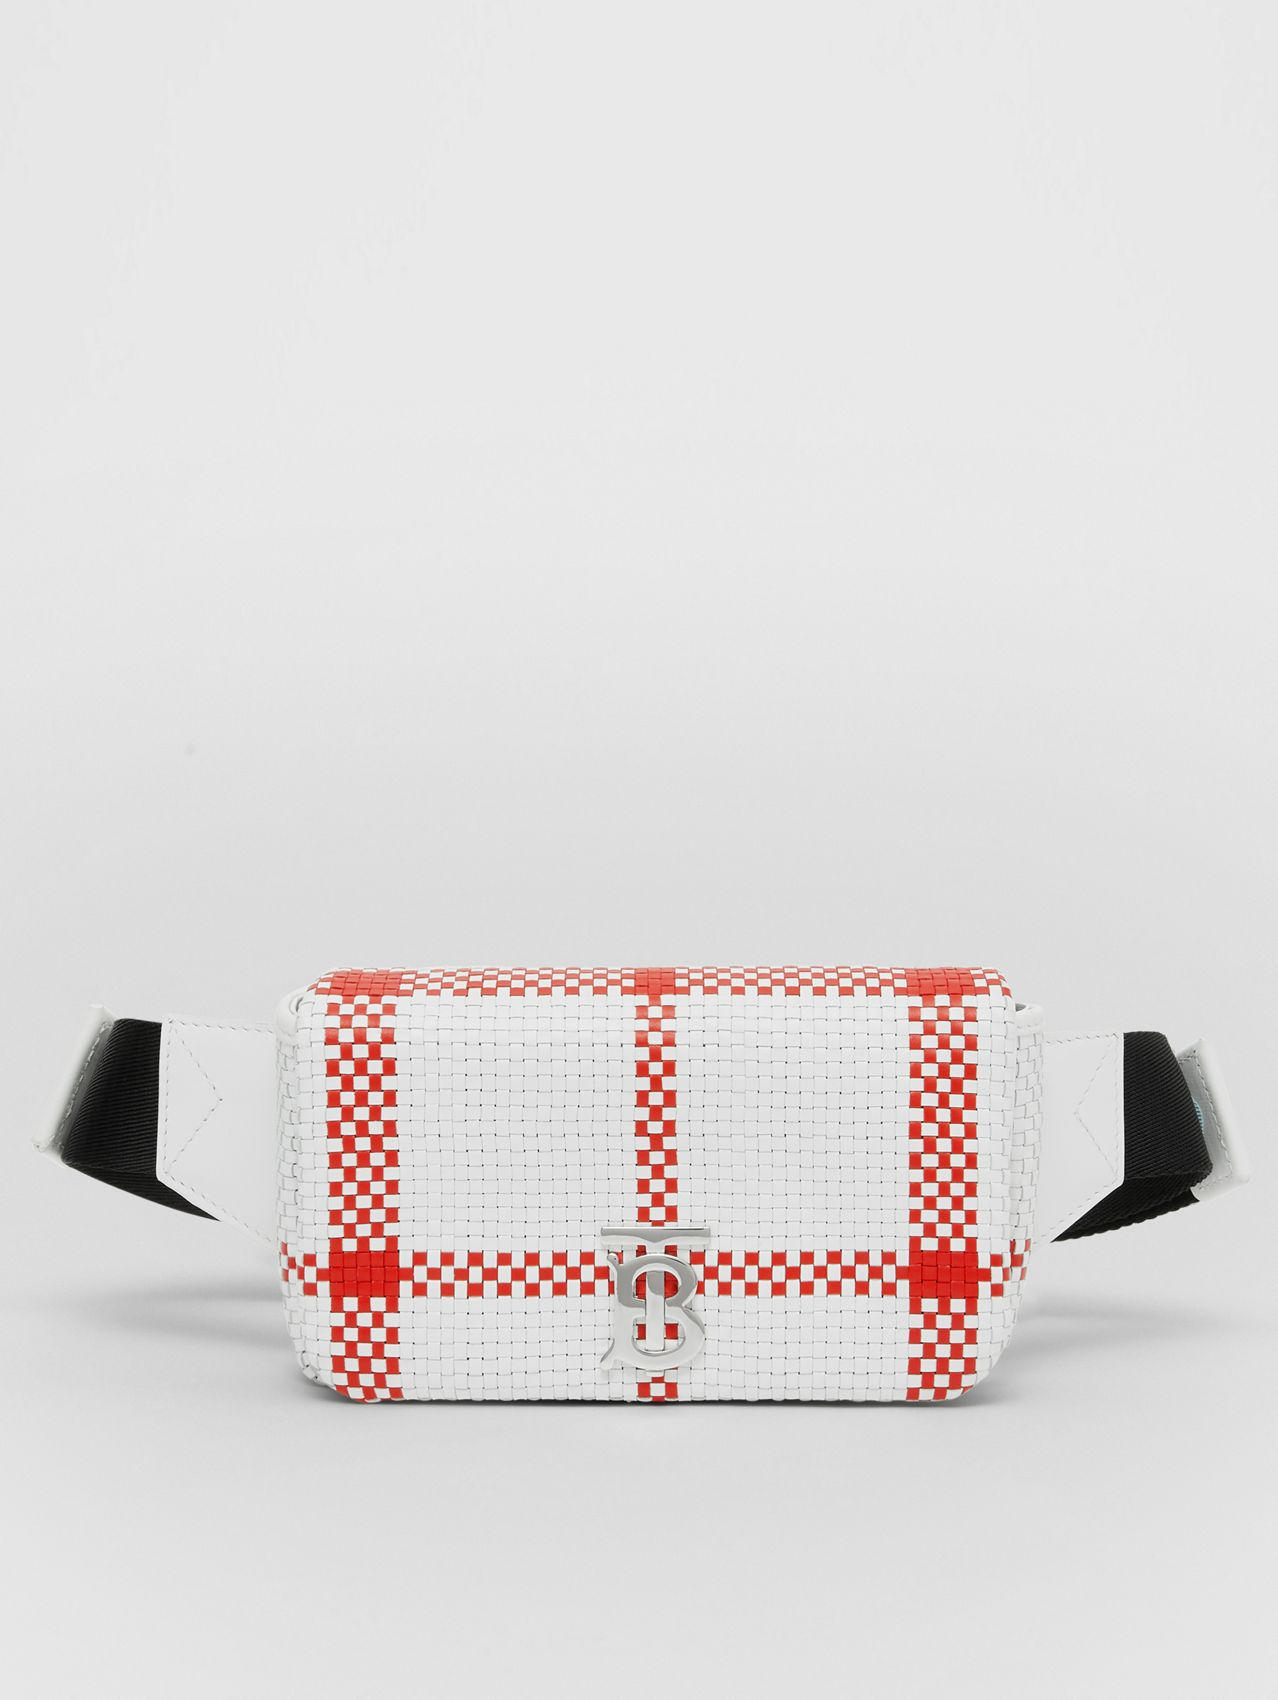 Latticed Leather Lola Bum Bag (White/red)